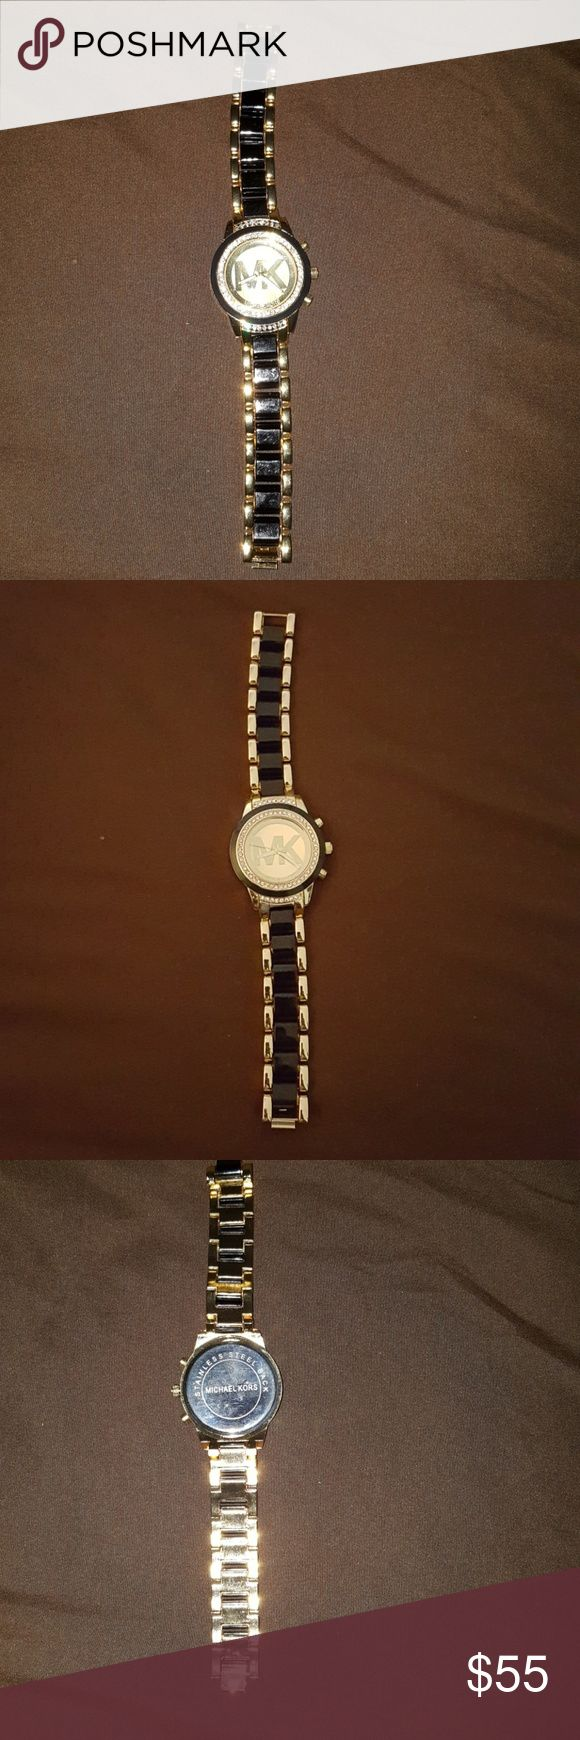 Michael kors watch price firm Pre owned  Good condition Still works Michael Kors Accessories Watches